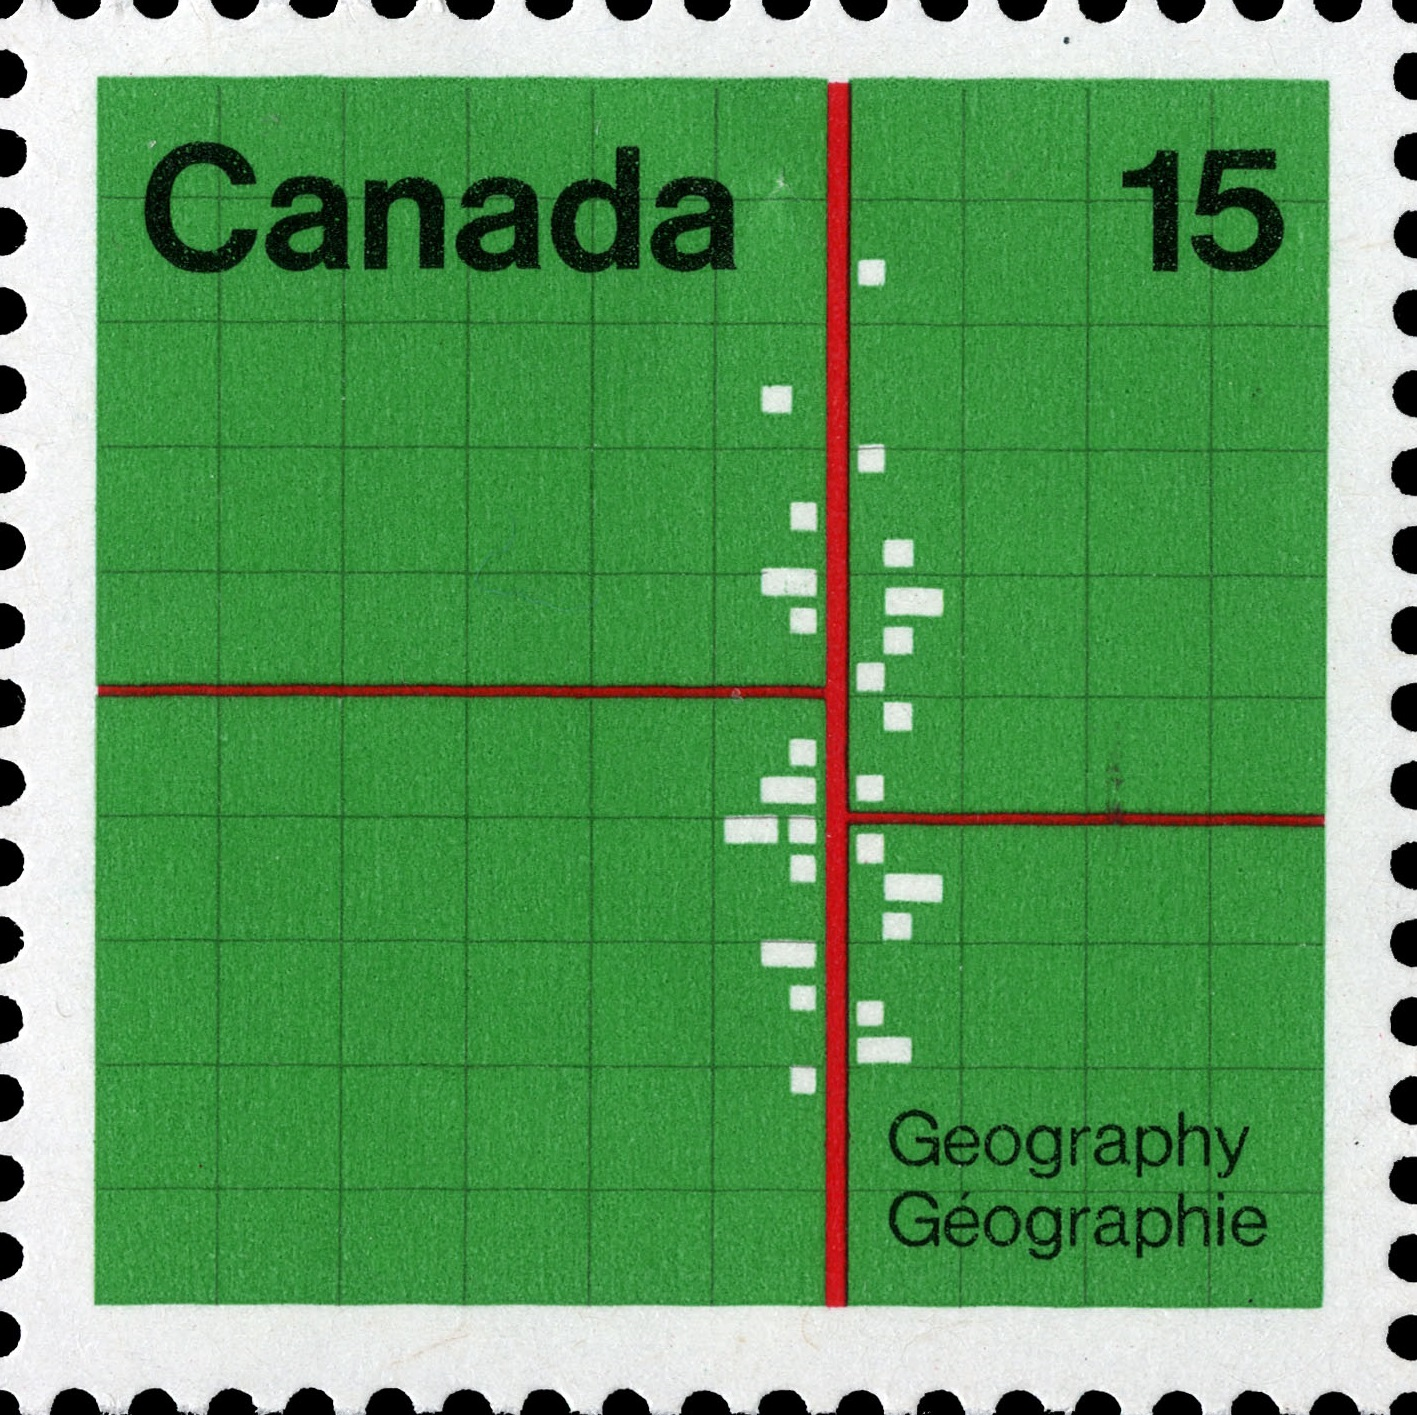 Geography Canada Postage Stamp